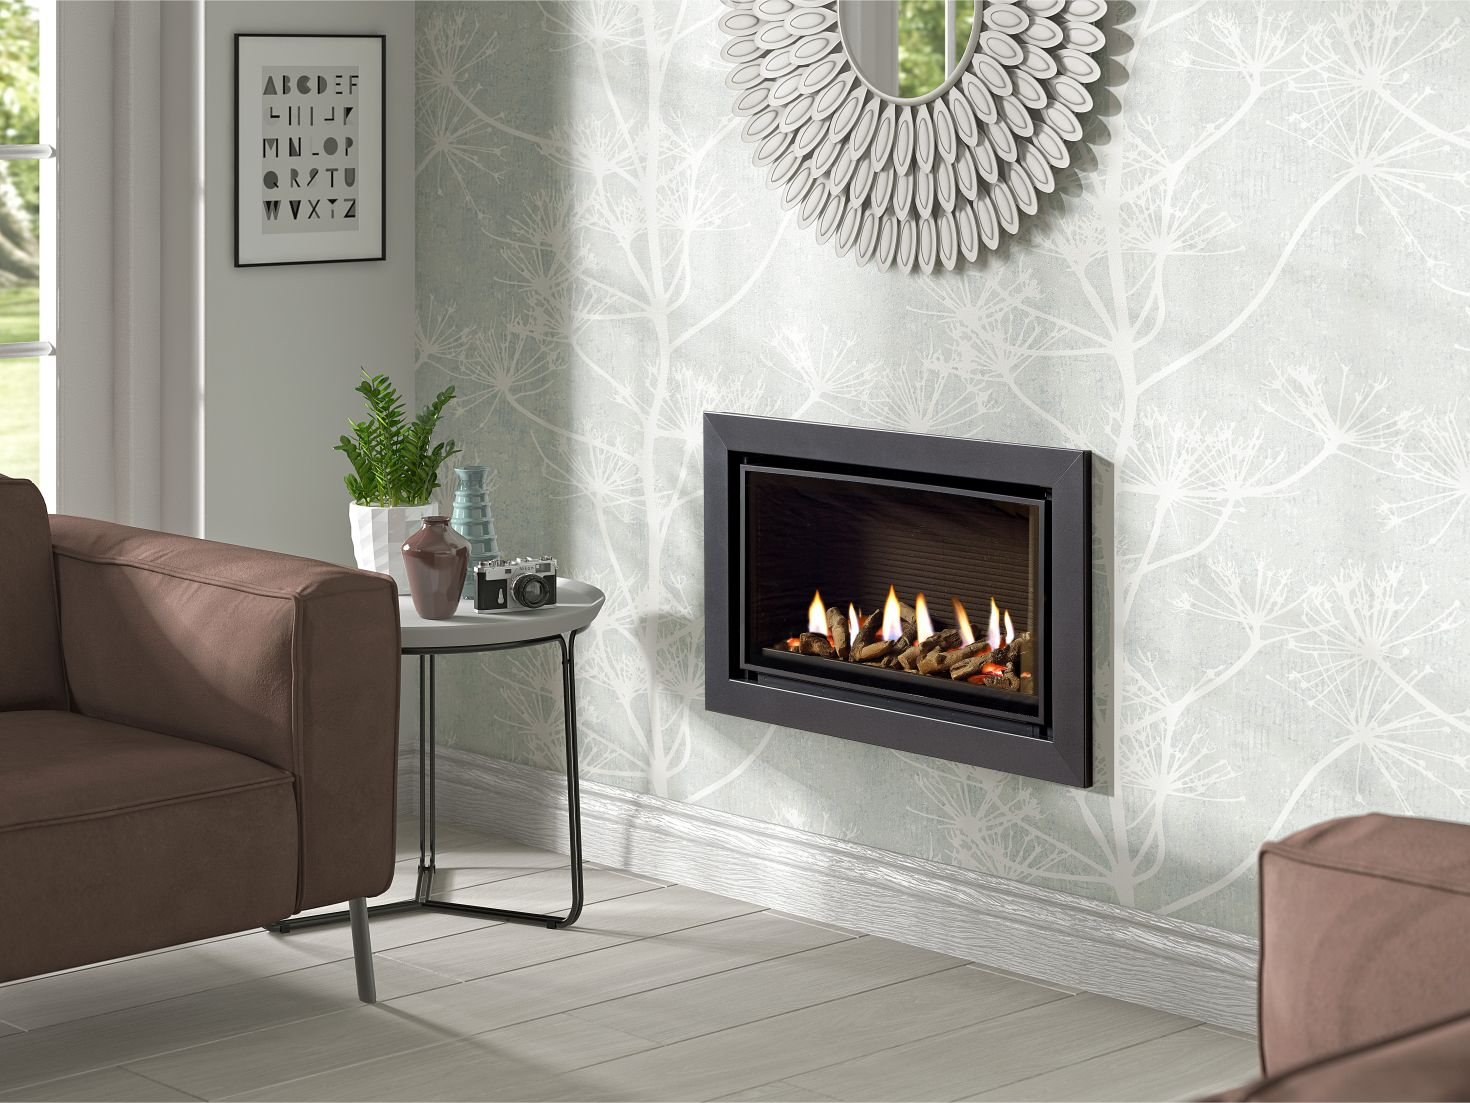 Infinity 600 Balance Flue Gas Fire, Hole in the Wall Gas Fire with Graphite Trim